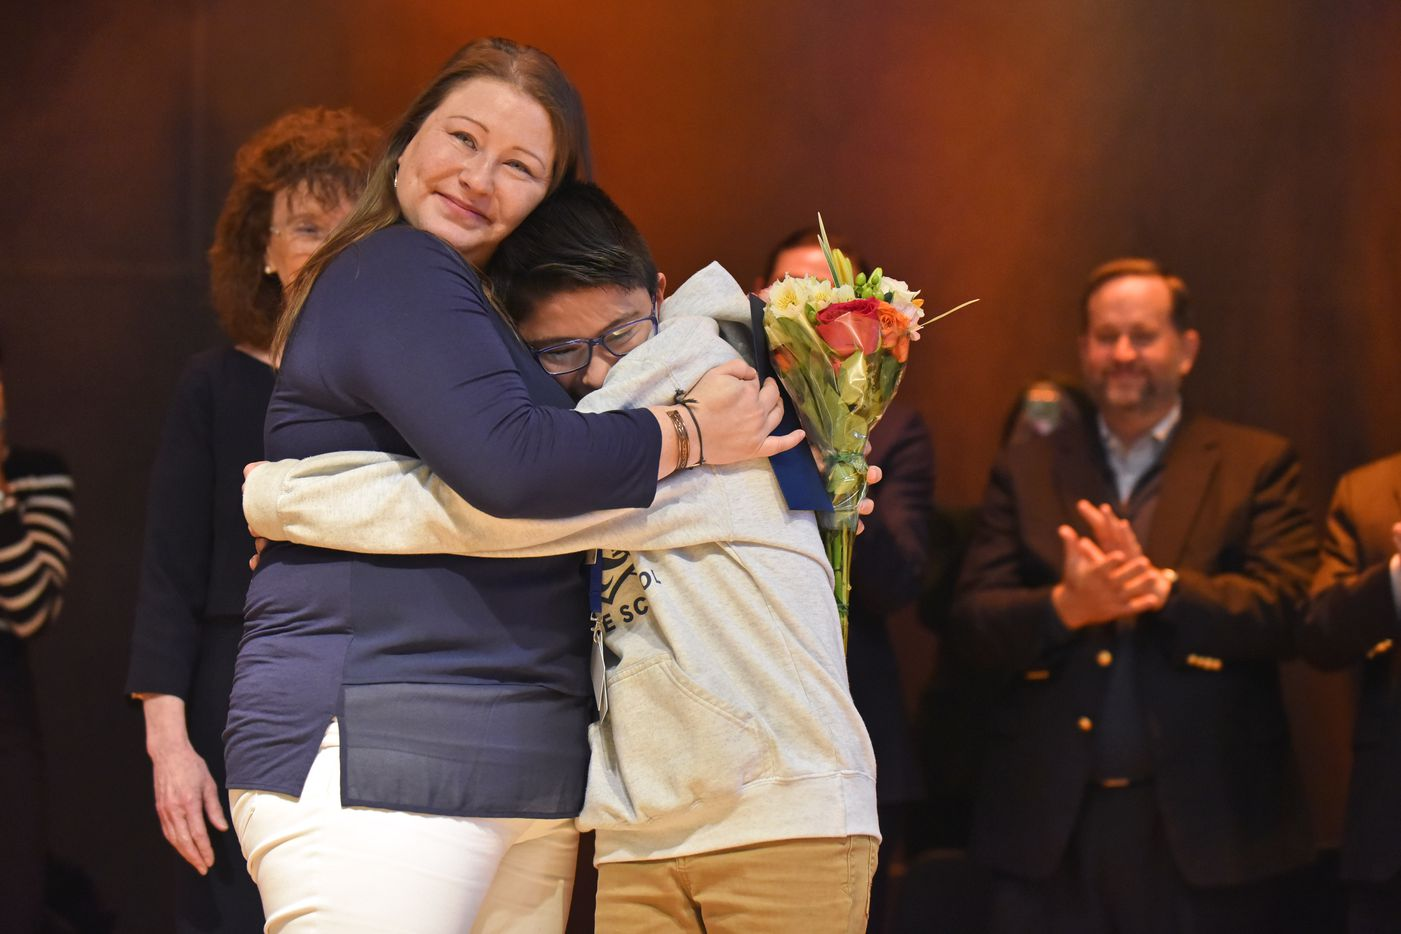 Susan Moreno, a J.L. Long Middle School Spanish teacher, hugs her son DeAngelo Moreno, 11, after she received a bouquet of flowers after being named the 2019 Milken Educator Award winner, presented by the Milken Family Foundation, at J.L. Long Middle School in Dallas, Nov. 14, 2019. The outstanding teacher award came with a $25,000 check. Ben Torres/Special Contributor